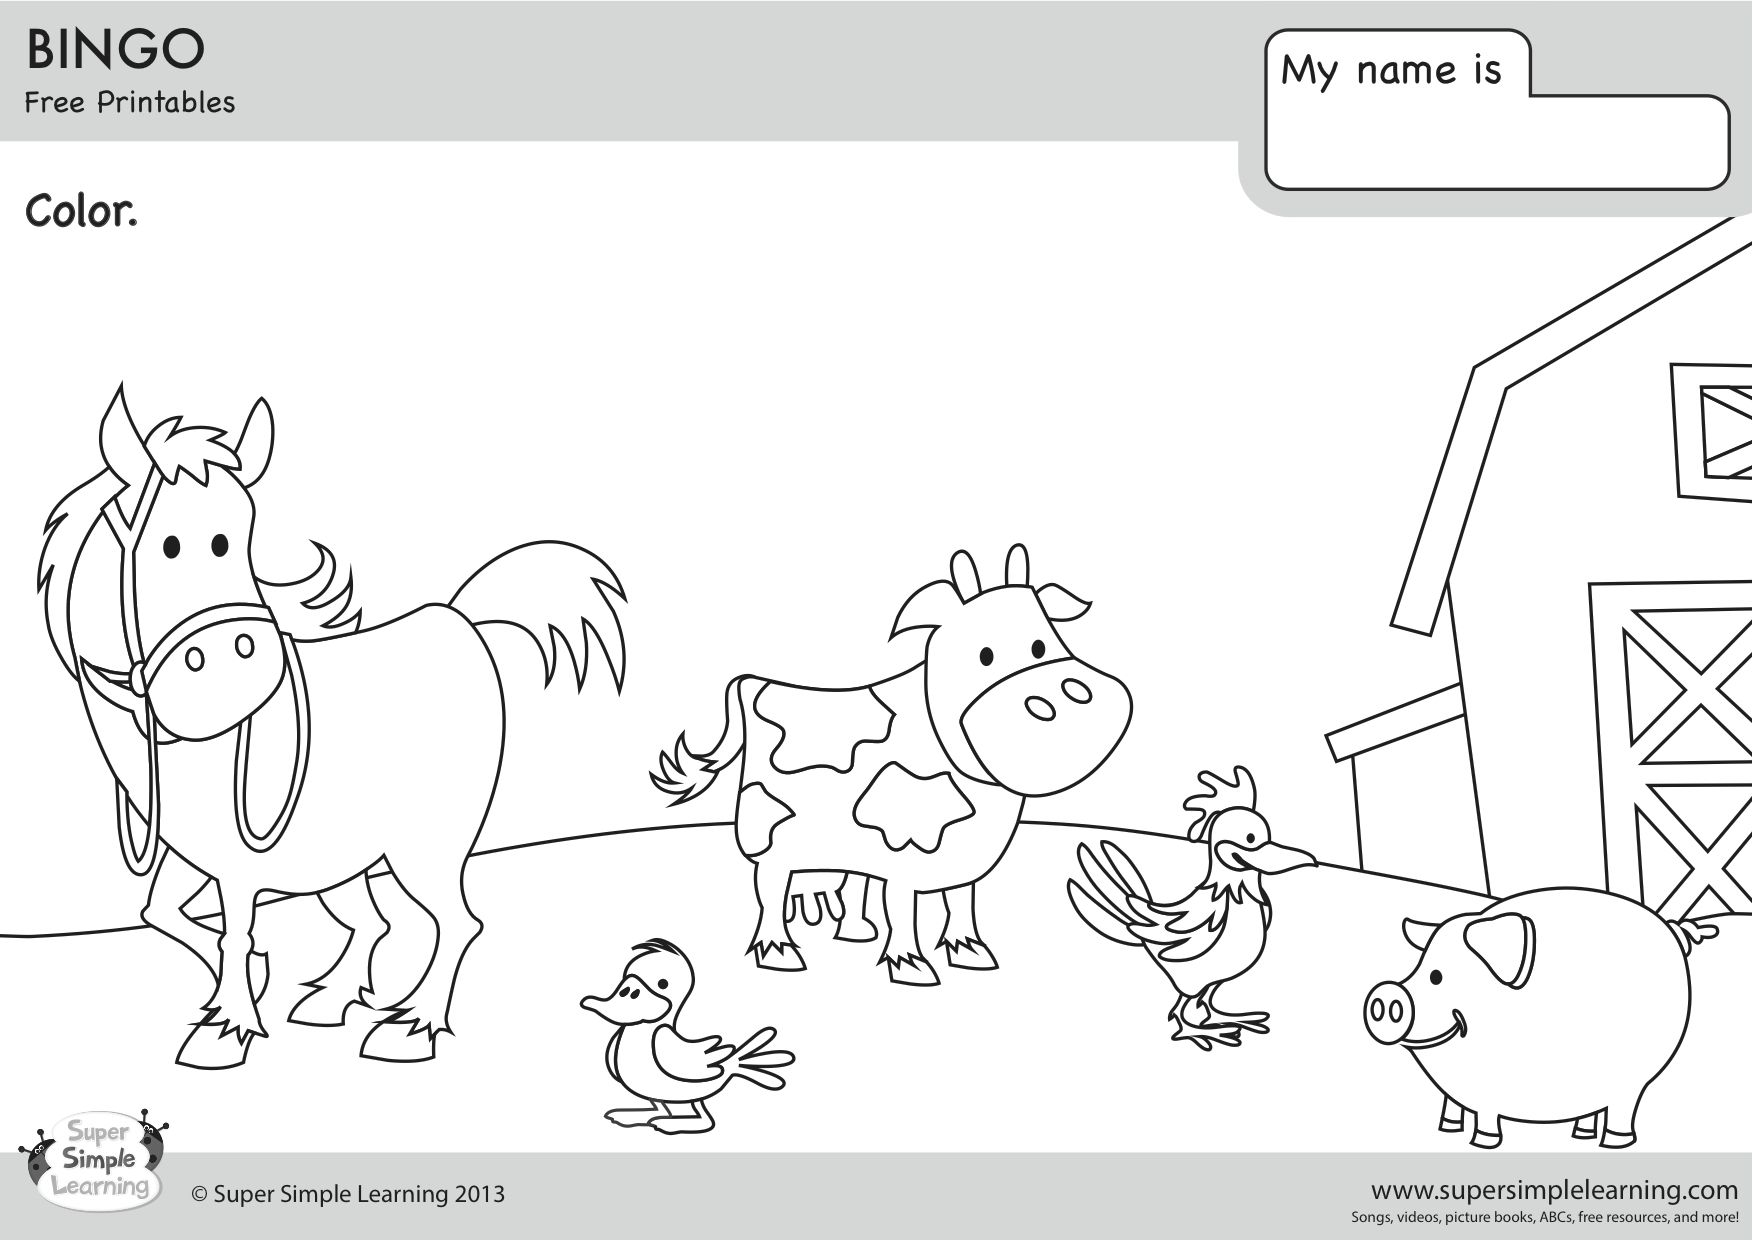 Bingo Coloring Page Coloring Pages Kids English Easy Coloring Pages